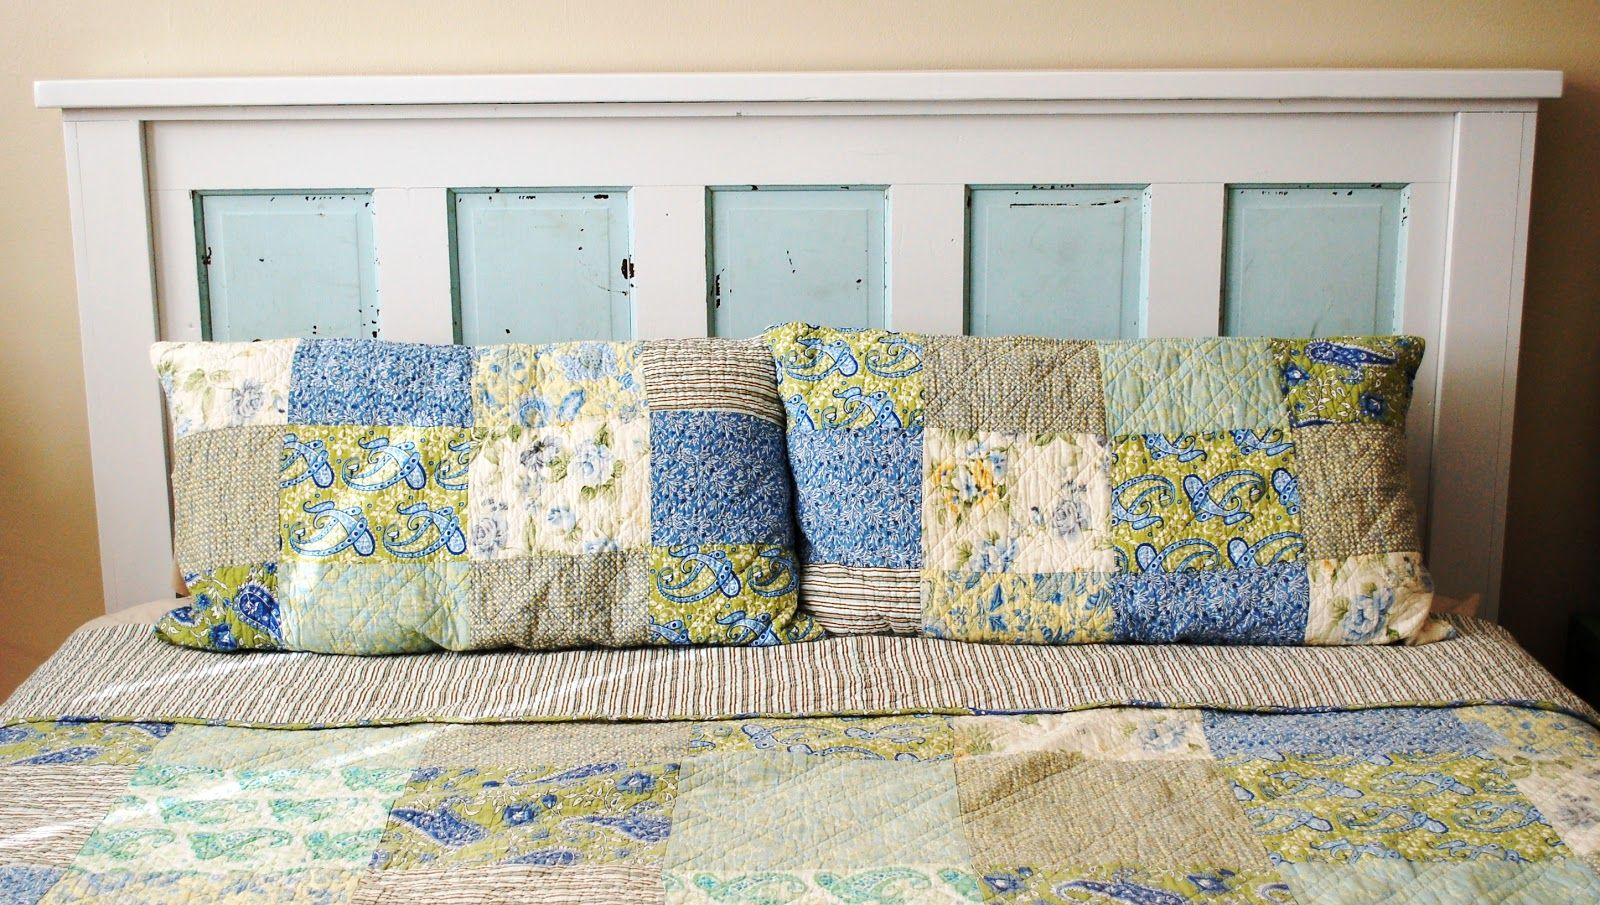 Ainut she crafty how to build a headboard from an old door art